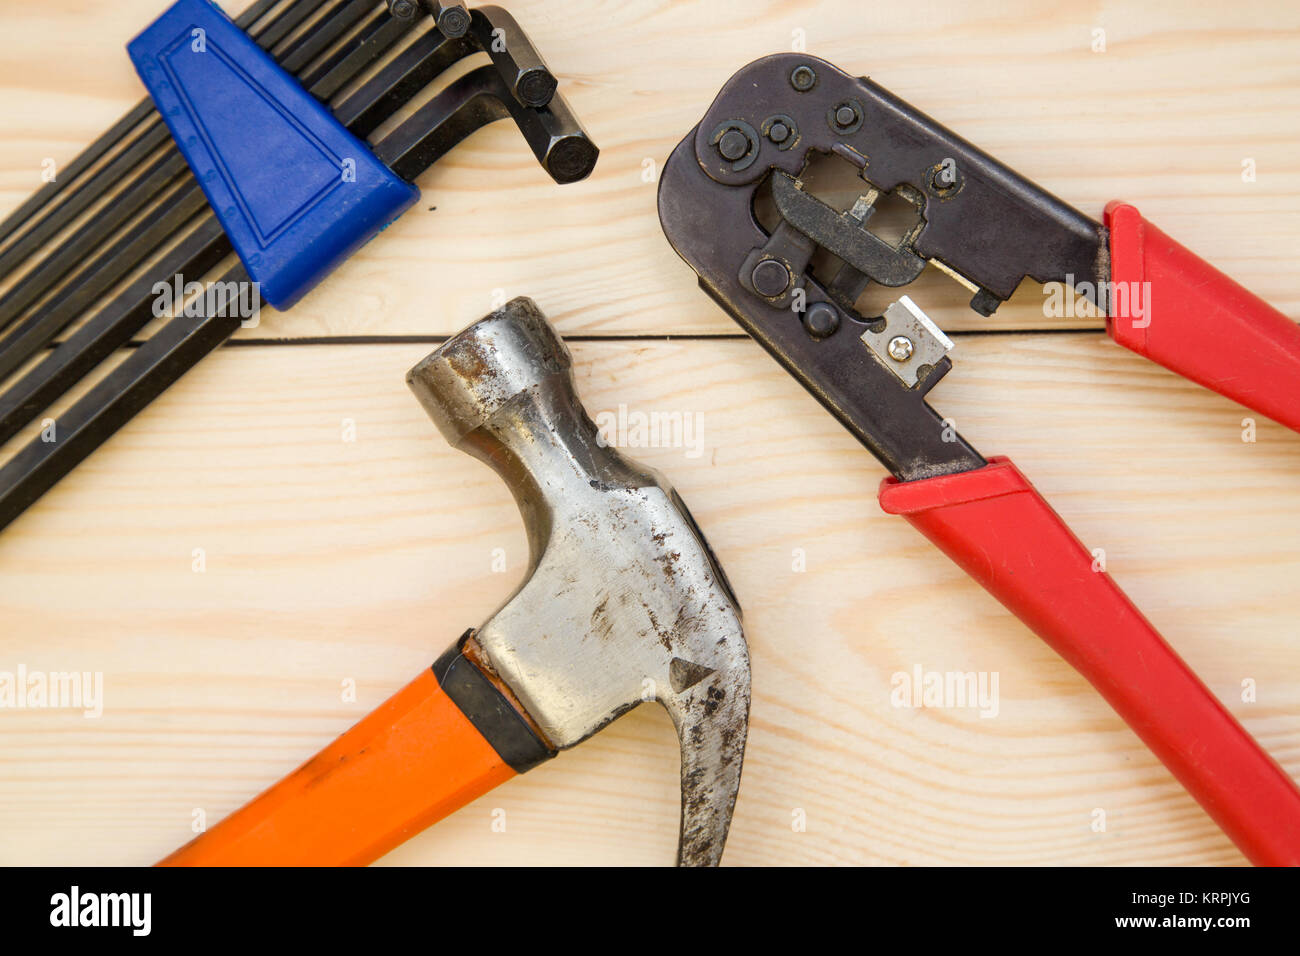 The House Of Hammer renovating a house. a set of repair tools- hex keys, a